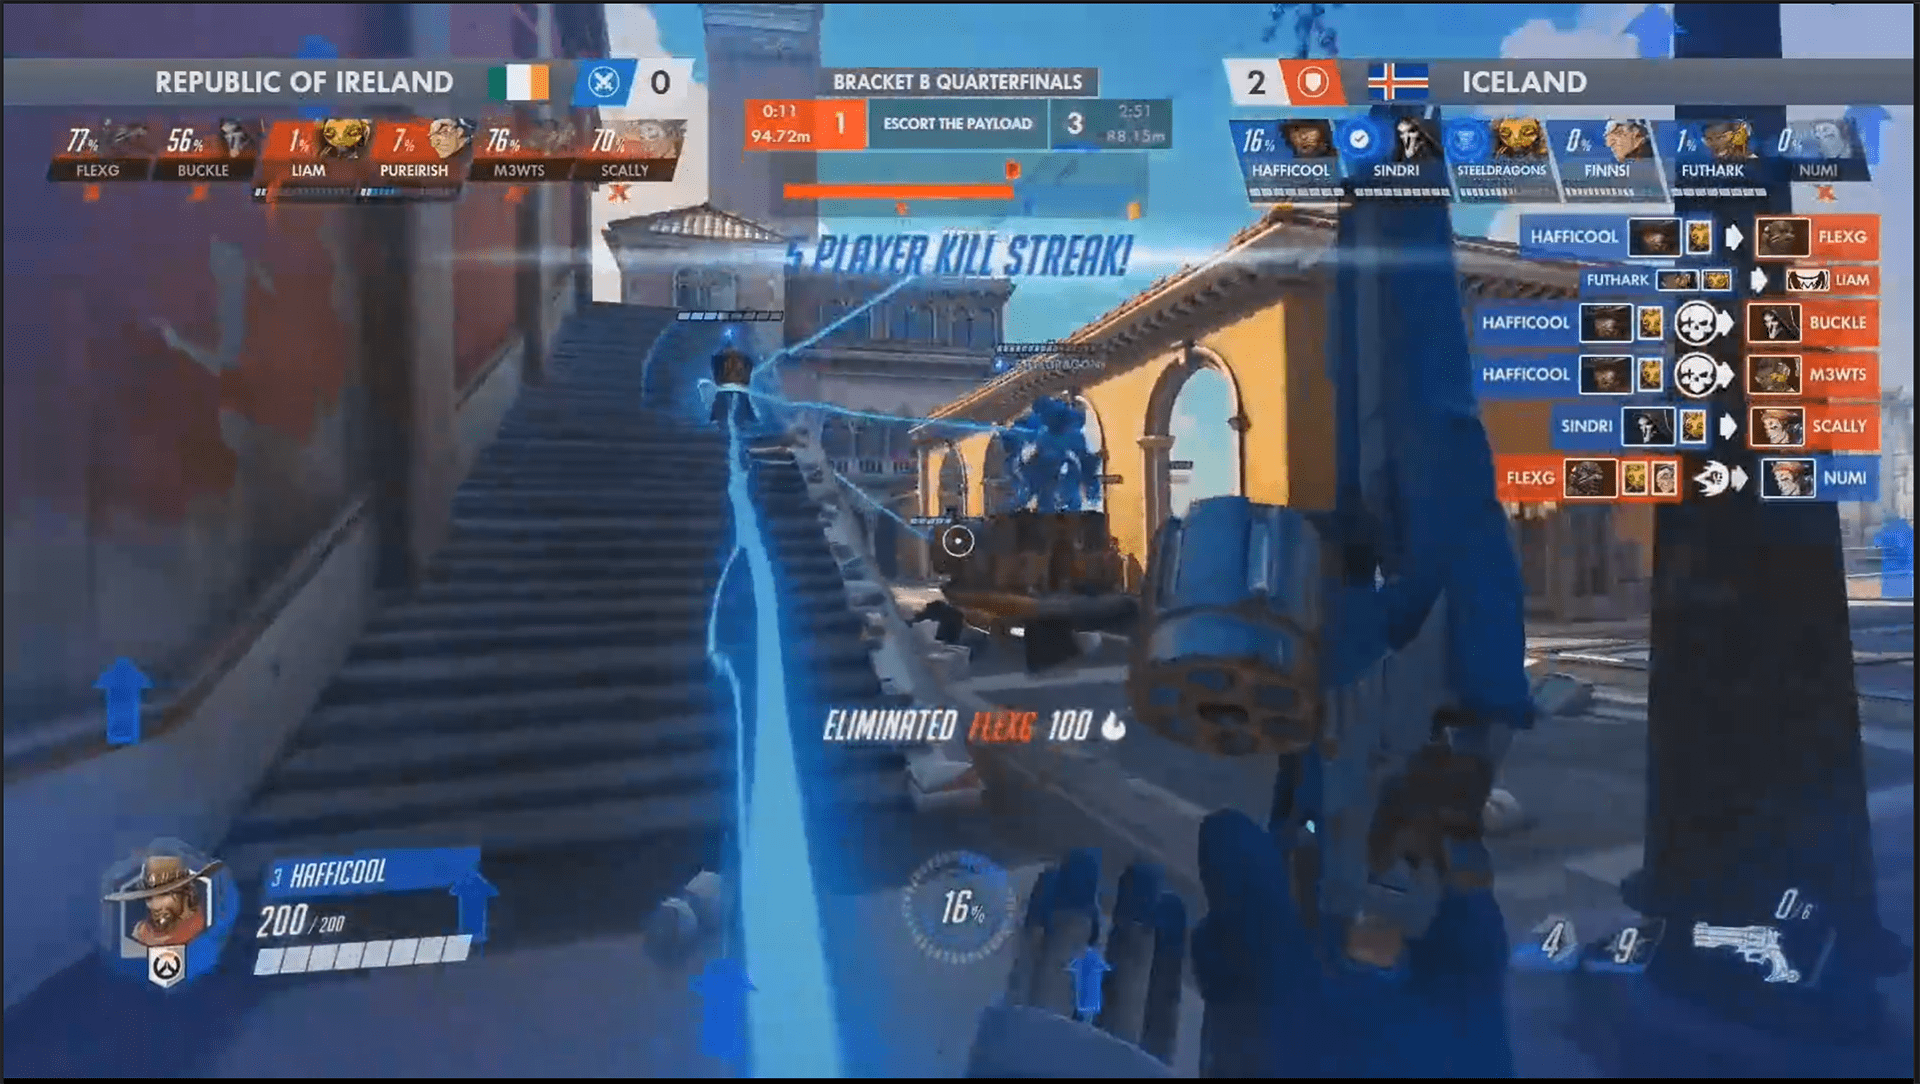 Austria And Republic Of Ireland Eliminated From Overwatch World Cup In First Hour Amid Technical Difficulties